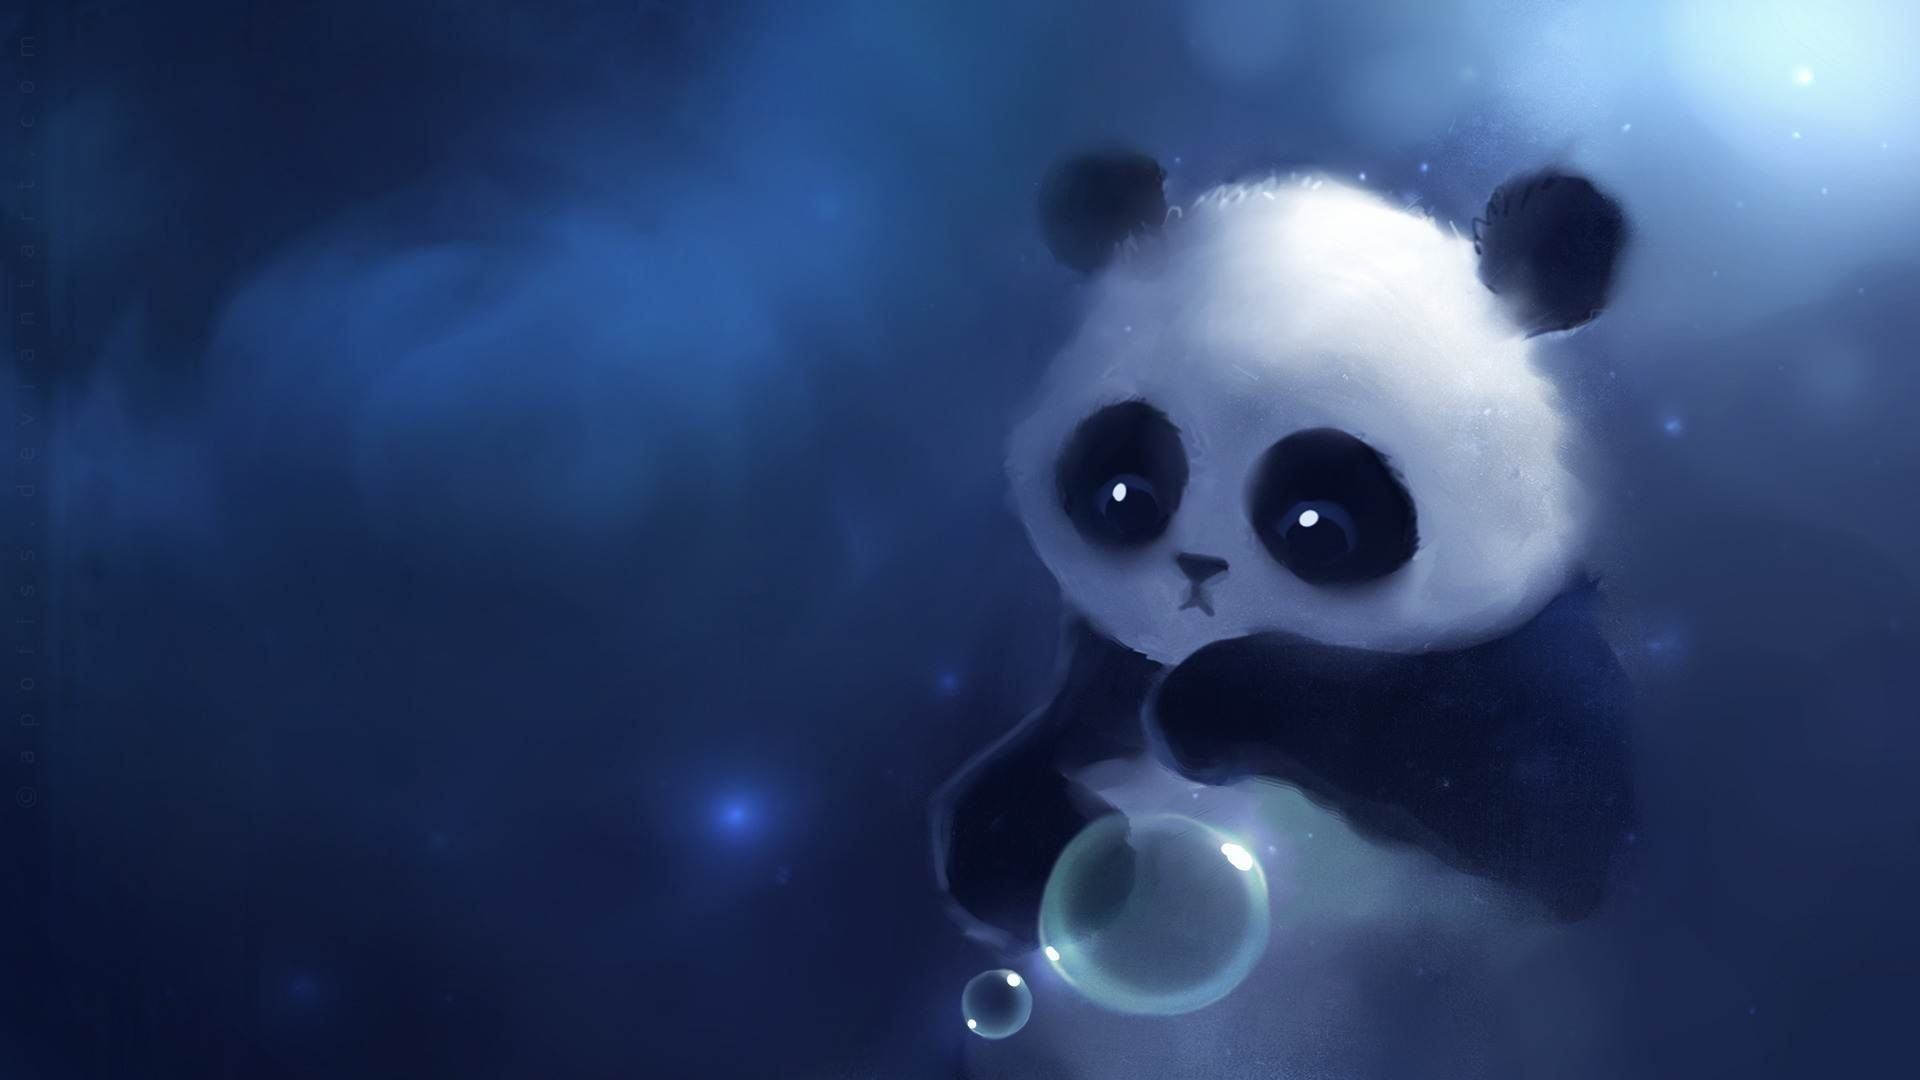 Blue Girly Wallpapers High Resolution For Desktop Wallpaper 1920 X 1080 Px 623 08 Kb Girl Chevron Quotes Ipho Panda Art Cute Panda Cartoon Cute Panda Wallpaper